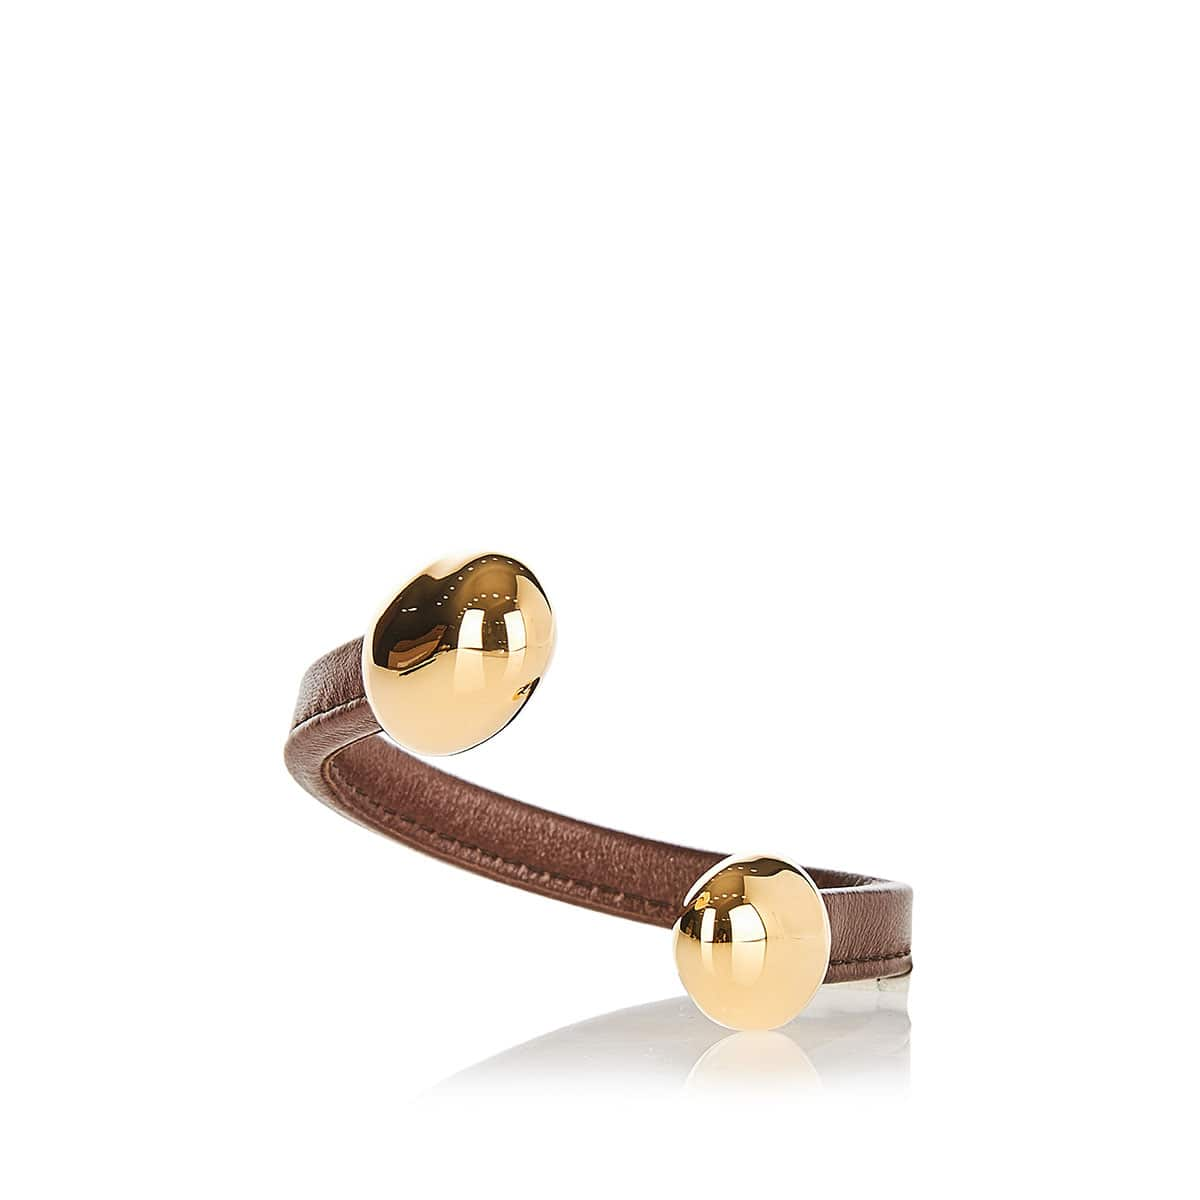 Leather bracelet with metal tips